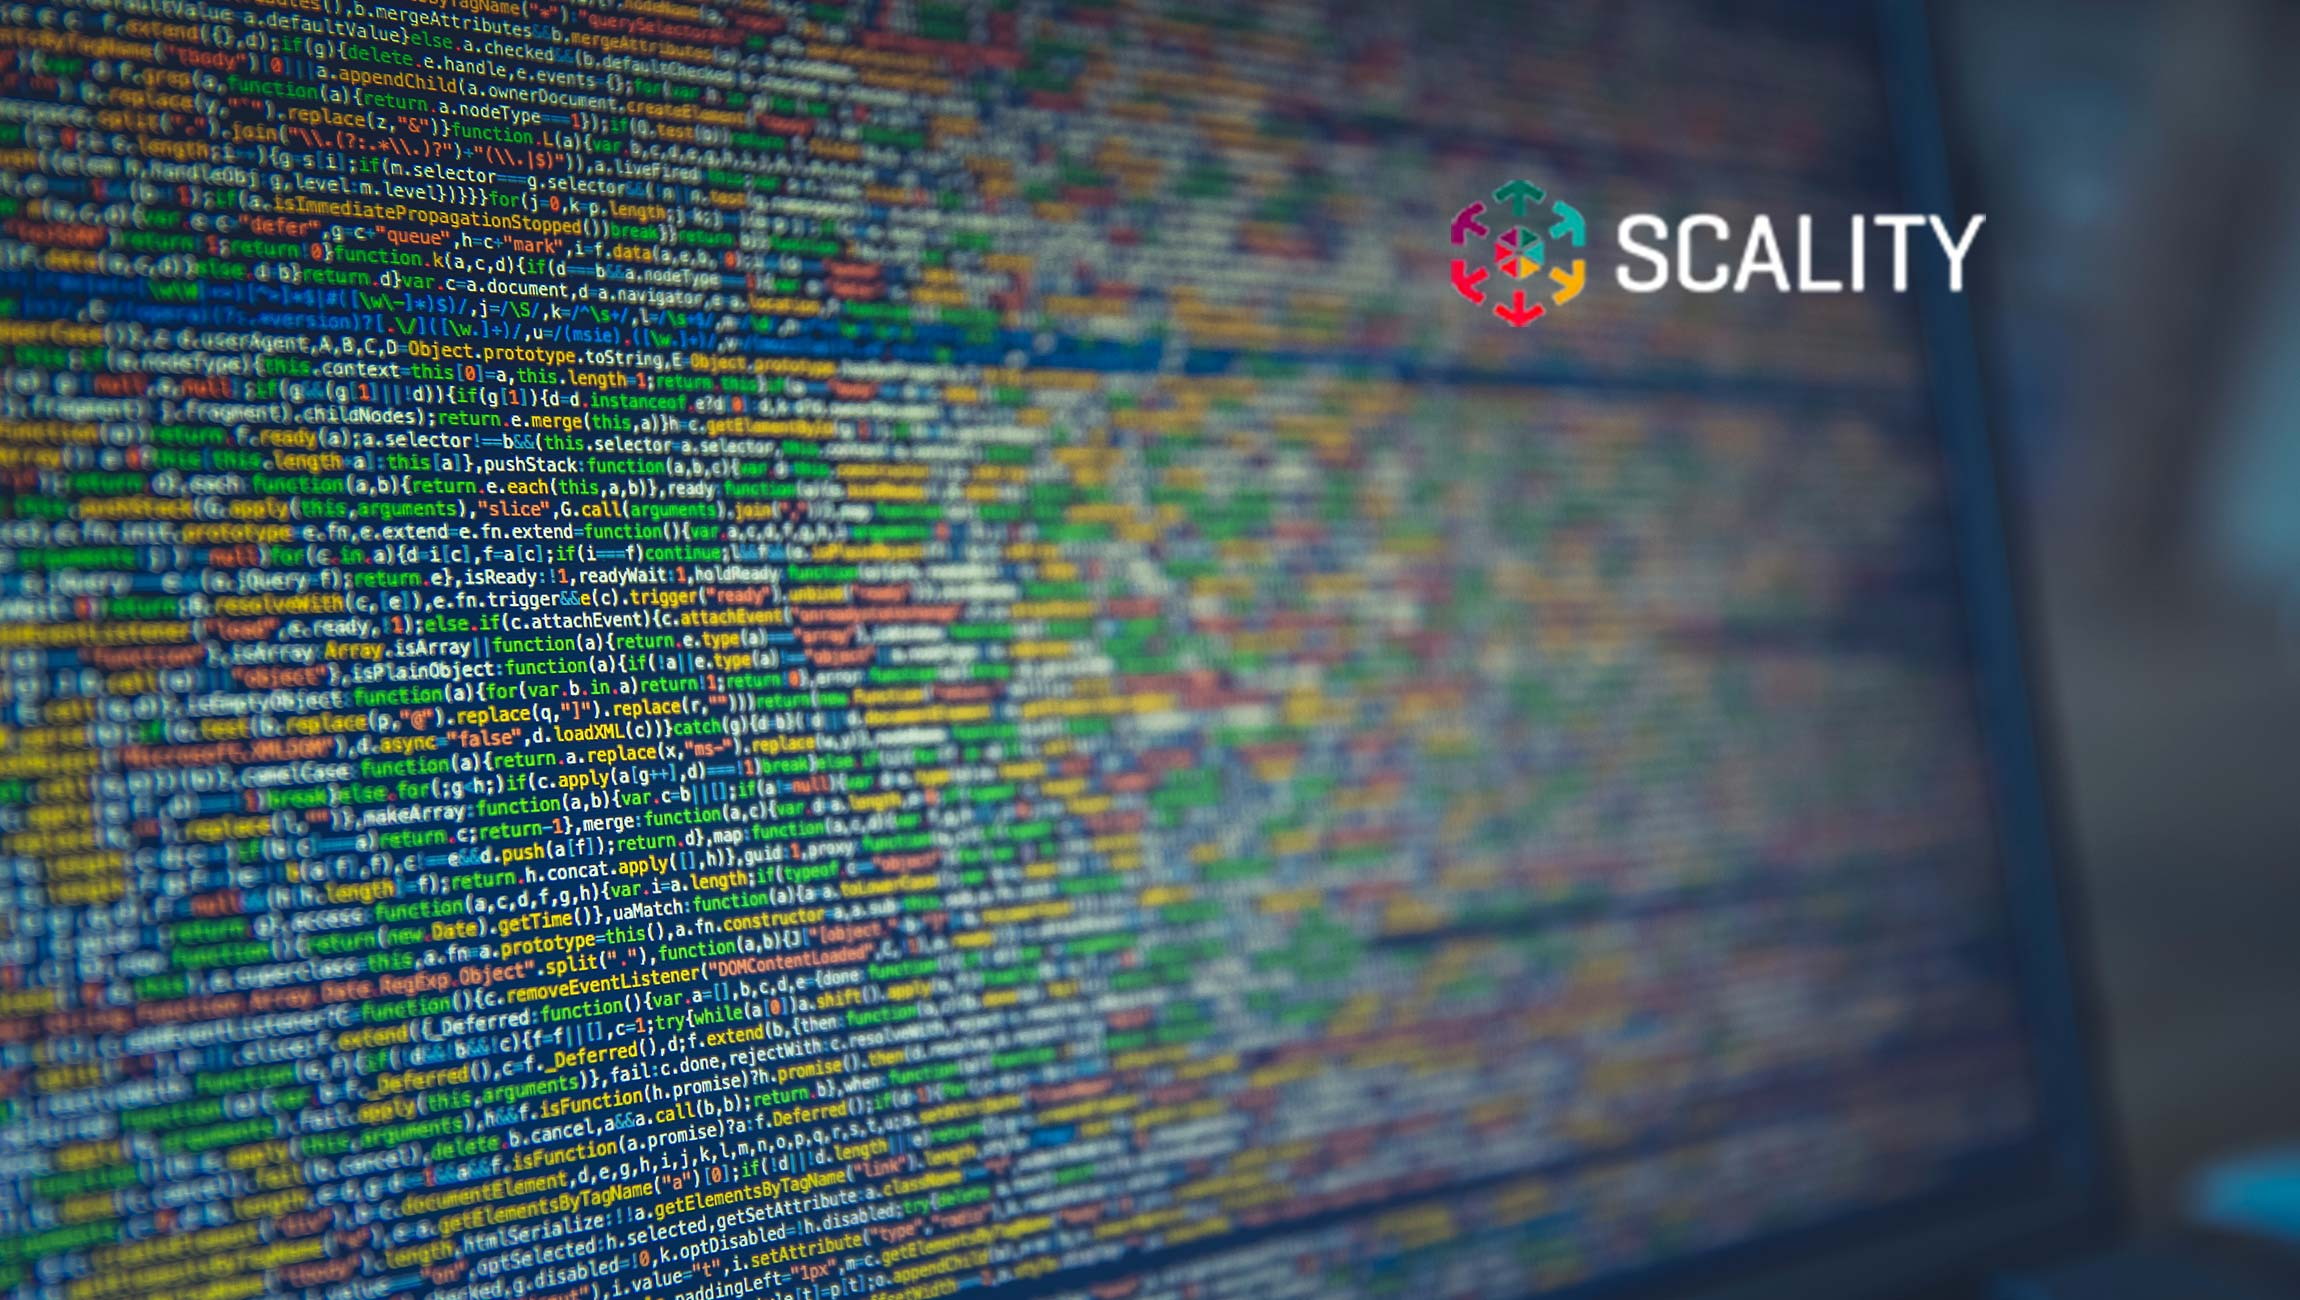 Scality Affirms Commitment to Open Source as Founding Member of New Linux Foundation